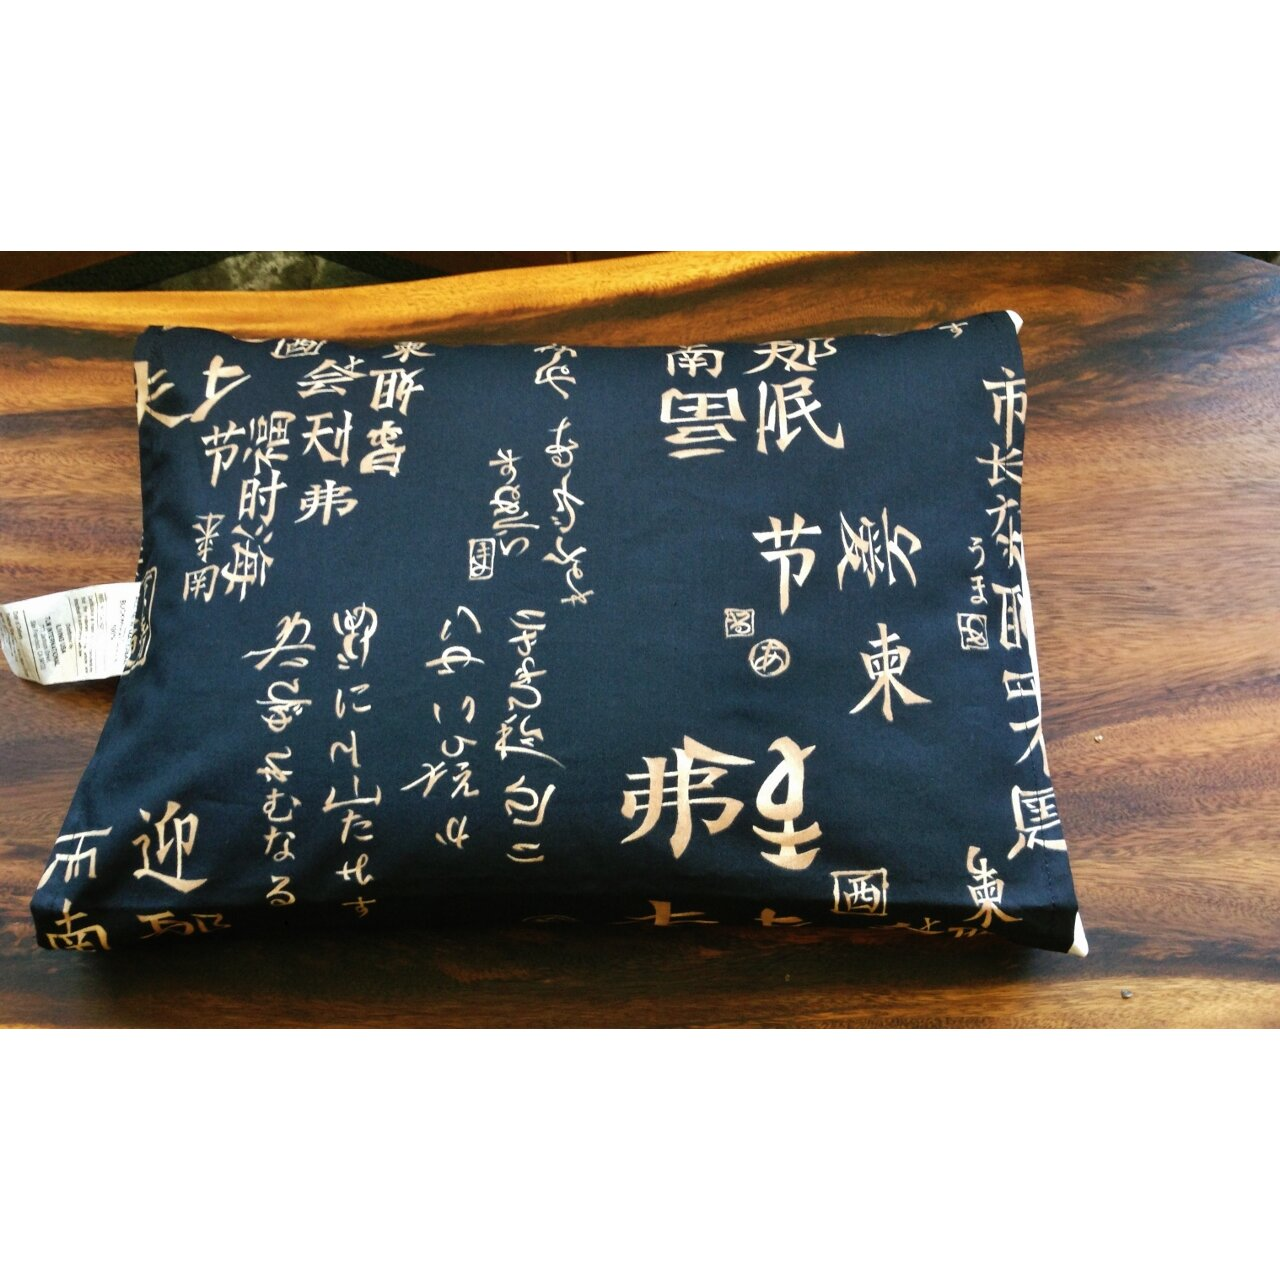 Iliving Organic Buckwheat Pillow With Authentic Japanese